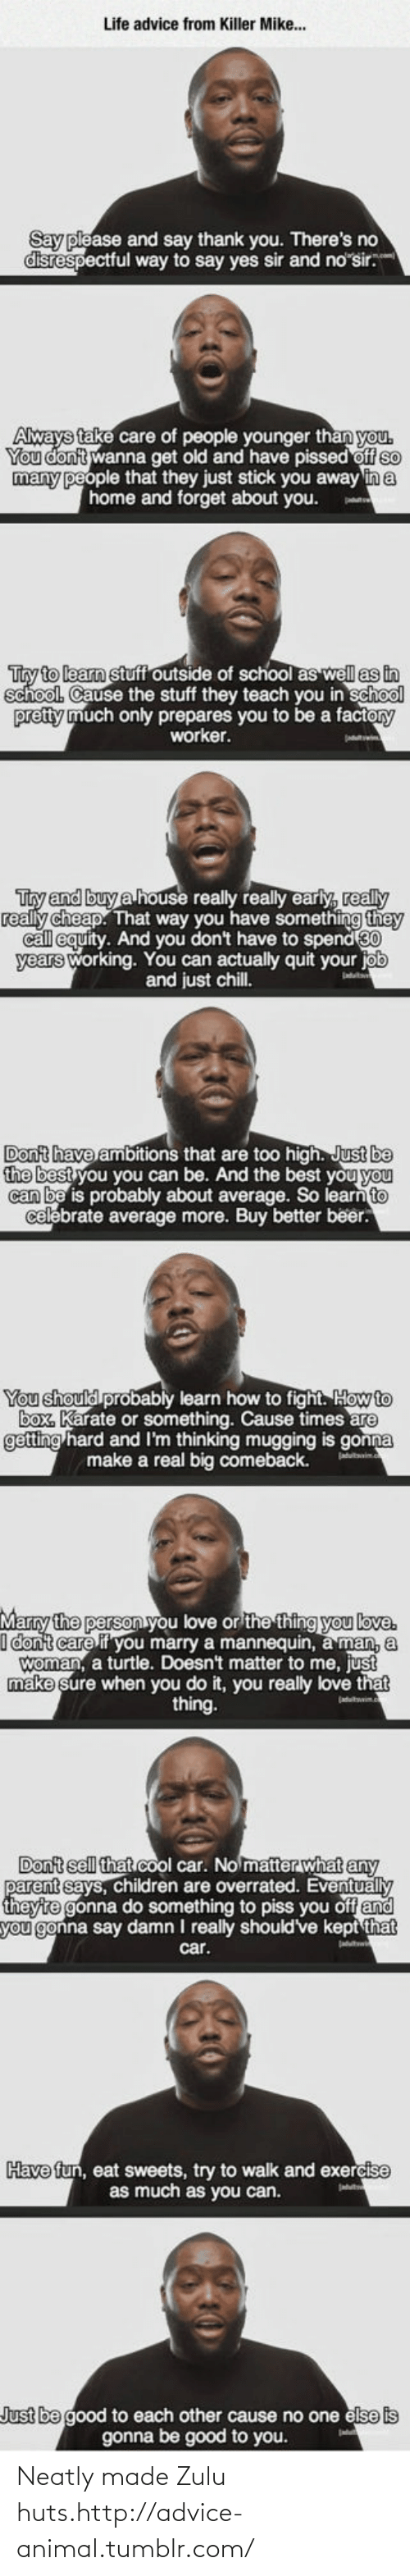 Ambitions: Life advice from Killer Mike...  Say please and say thank you. There's no  disrespectful way to say yes sir and no sir.  Aways take care of people younger than you.  You don't wanna get old and have pissed off so  many people that they just stick you away in a  home and forget about you.  Try to learn stuff outside of school as well as in  school. Cause the stuff they teach you in school  pretty much only prepares you to be a factory  worker.  Try and buy a house really really early, really  really cheap. That way you have something they  call equity. And you don't have to spend 80  years working. You can actually quit your job  and just chill.  Don't have ambitions that are too high. Just be  the best you you can be. And the best you you  can be is probably about average. So learn to  celebrate average more. Buy better beer.  You should probably learn how to fight. How to  box. Karate or something. Cause times are  getting hard and I'm thinking mugging is gonna  make a real big comeback.  Marry the person you love or the thing you love.  I dont care if you marry a mannequin, a man, a  woman, a turtle. Doesn't matter to me, just  make sure when you do it, you really love that  thing.  Don't sell that cool car. No matter what any  parent says, children are overrated. Eventually  theytre gonna do something to piss you off and  you gonna say damn I really should've kept that  car.  Have fun, eat sweets, try to walk and exercise  as much as you can.  Just be good to each other cause no one else is  gonna be good to you. Neatly made Zulu huts.http://advice-animal.tumblr.com/